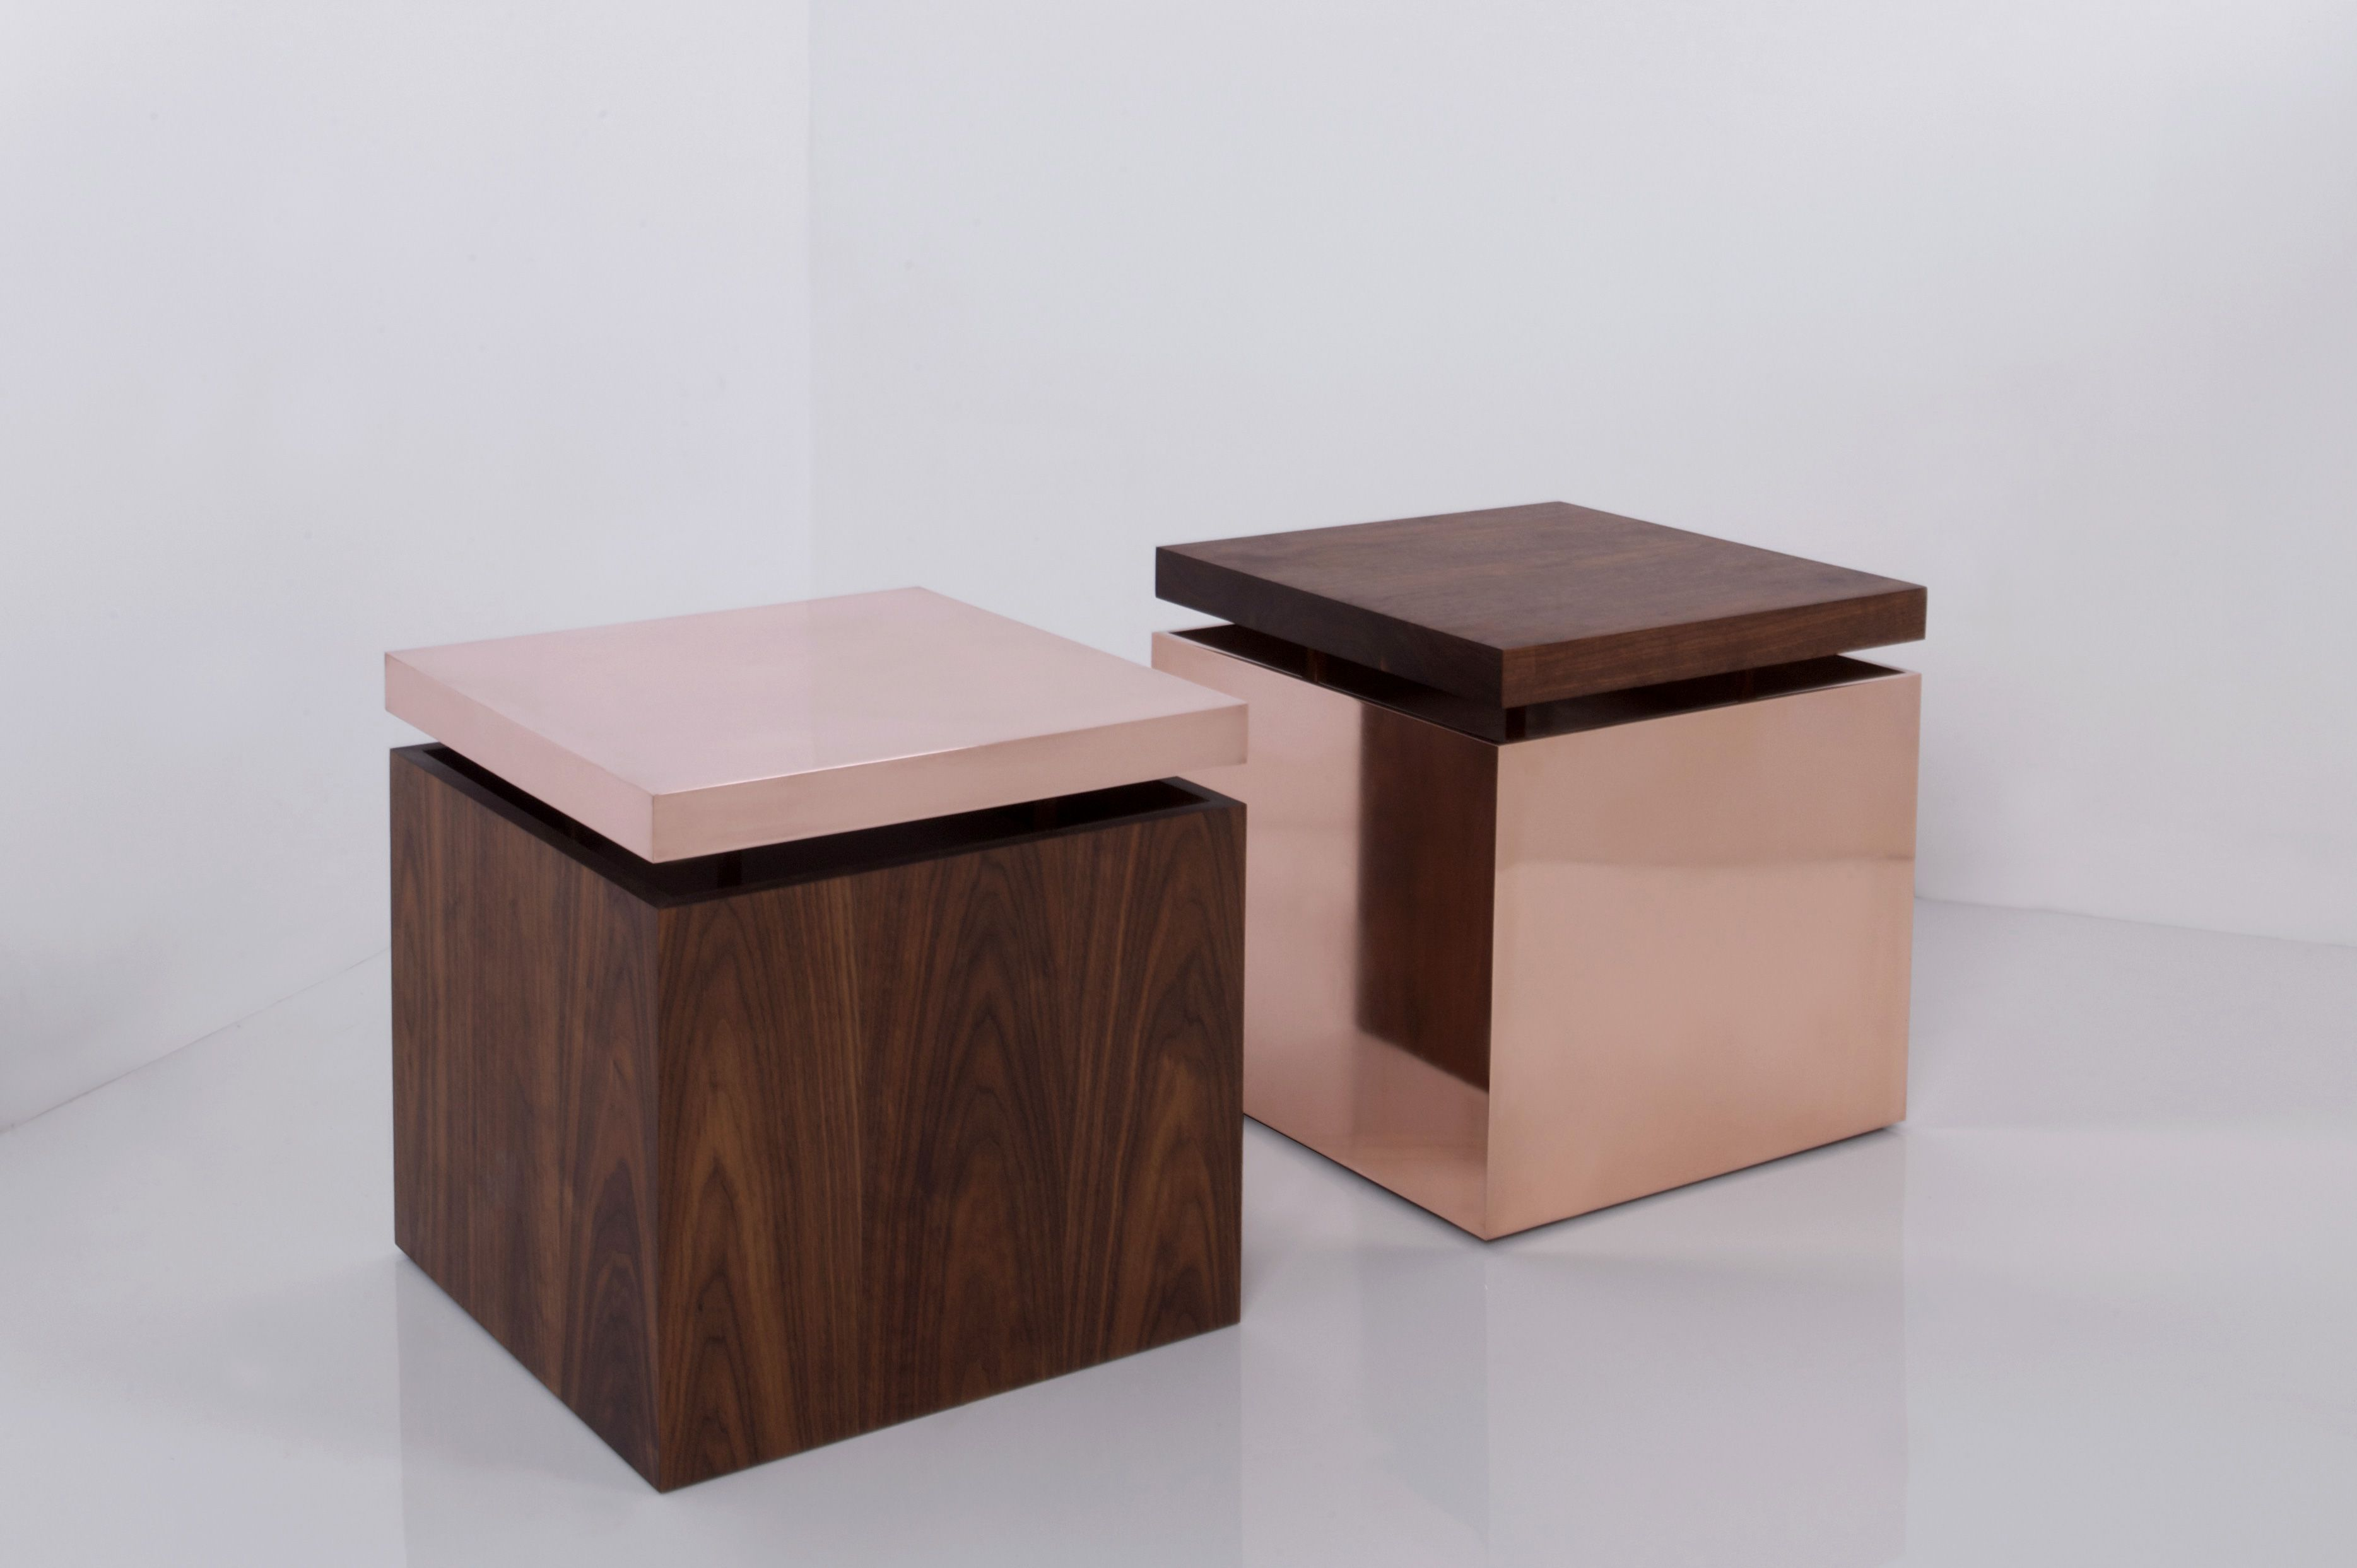 Pin by Photo&Design on 产品设计 | Table, End tables, Furniture ...